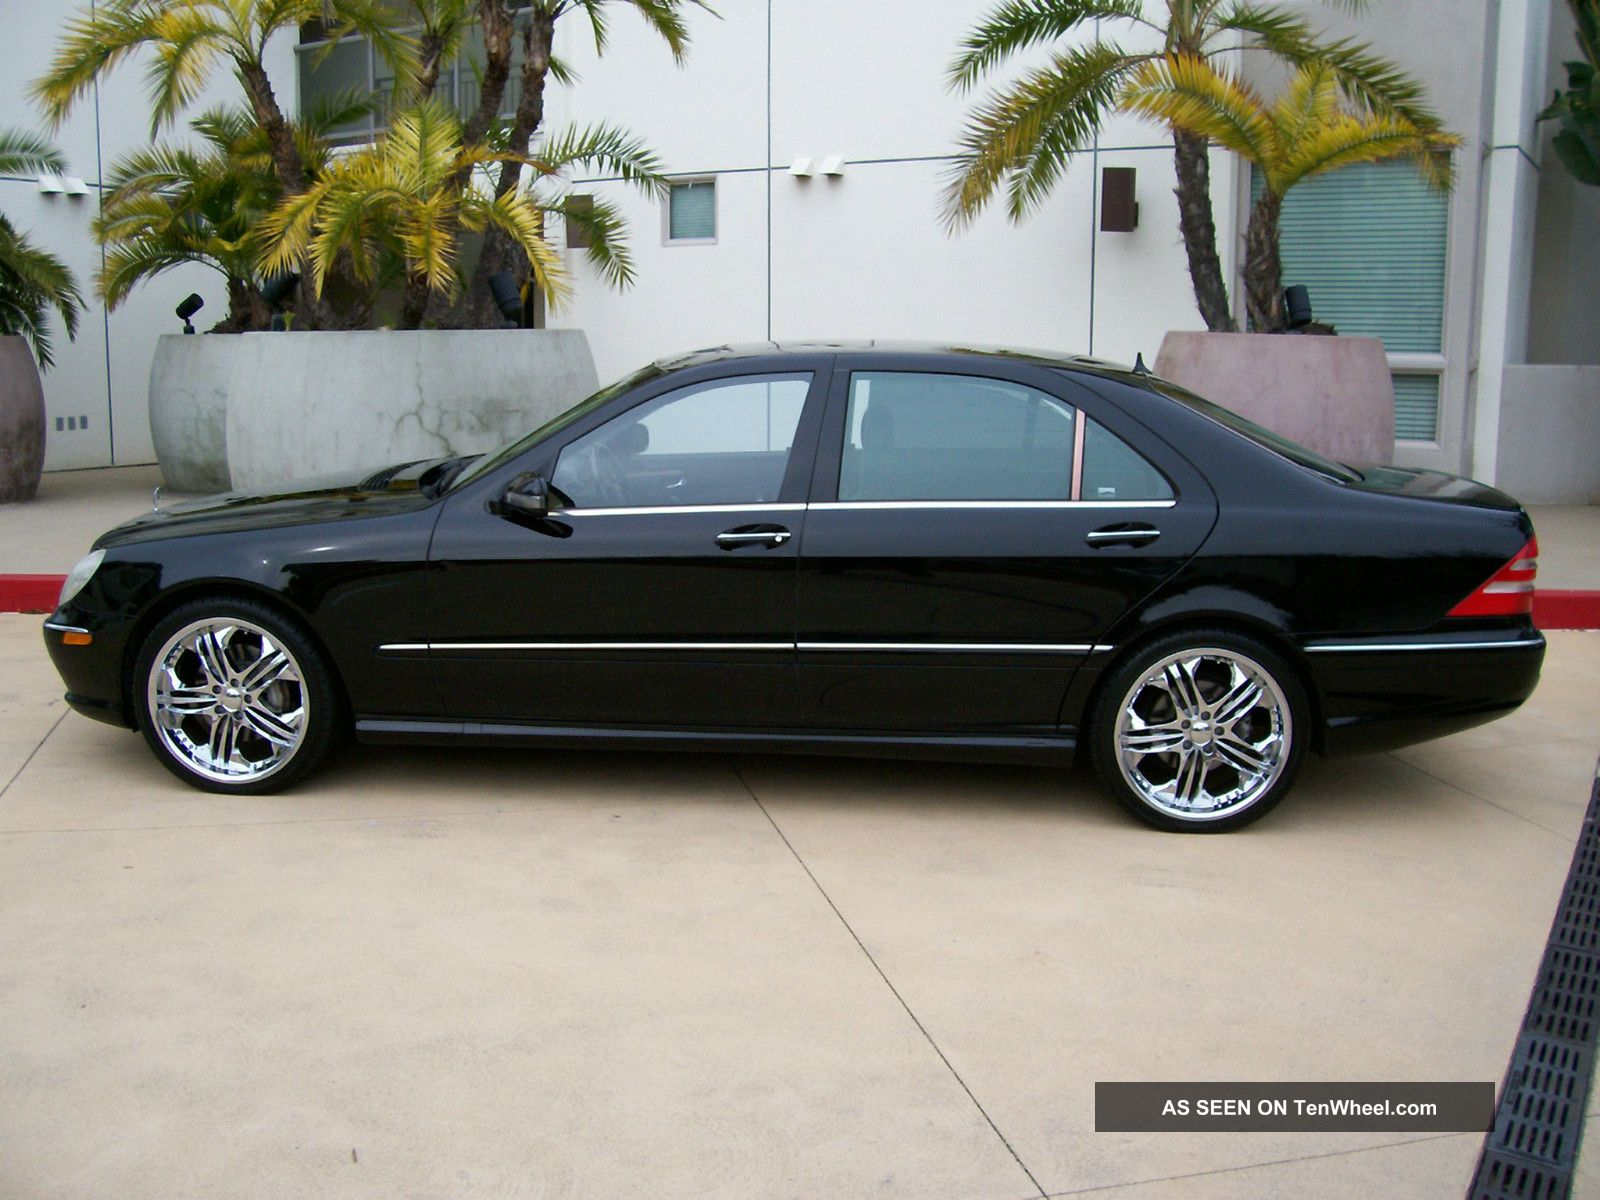 2002 mercedes benz s500 base sedan 4 door 5 0l loaded for Mercedes benz 2002 s500 for sale